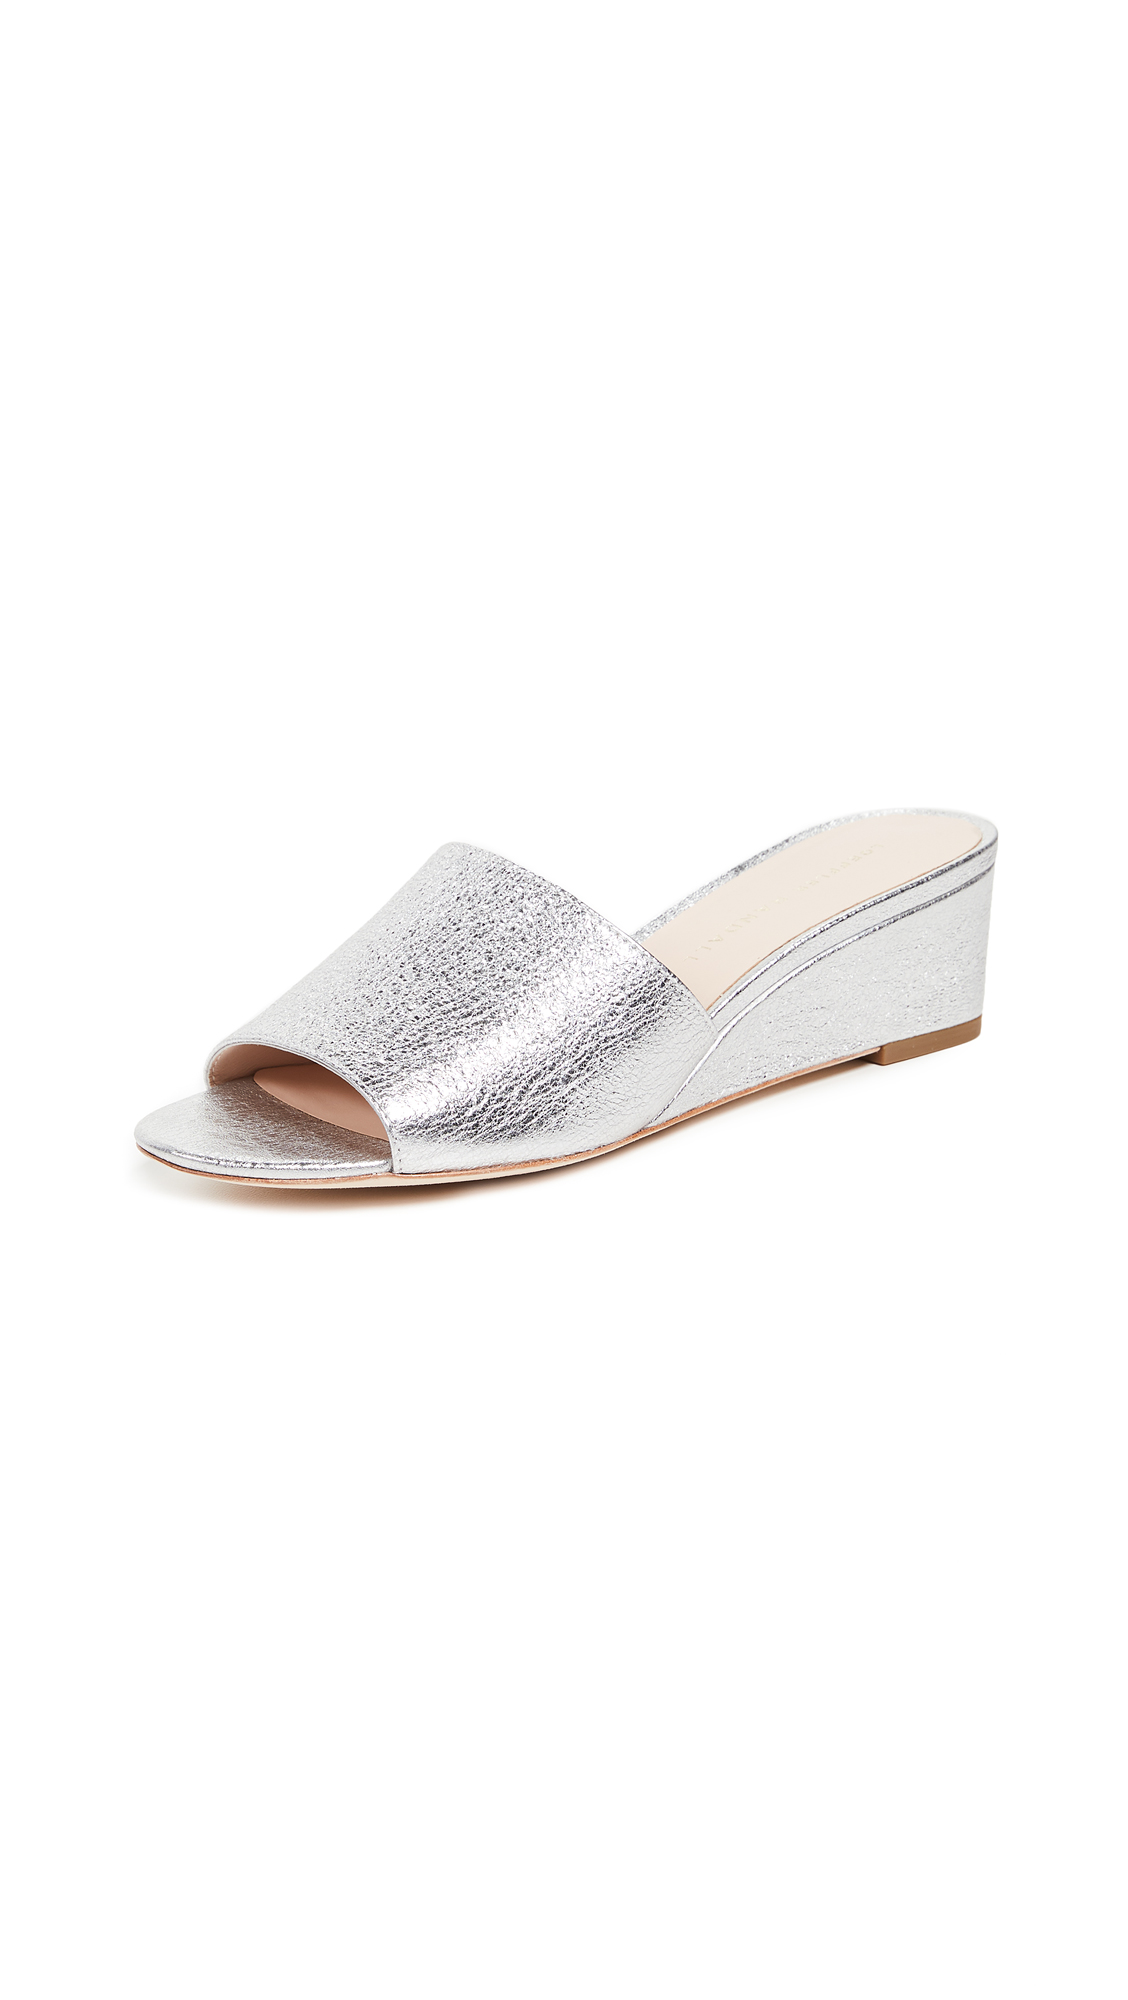 Loeffler Randall Tilly Wedge Slides - Silver